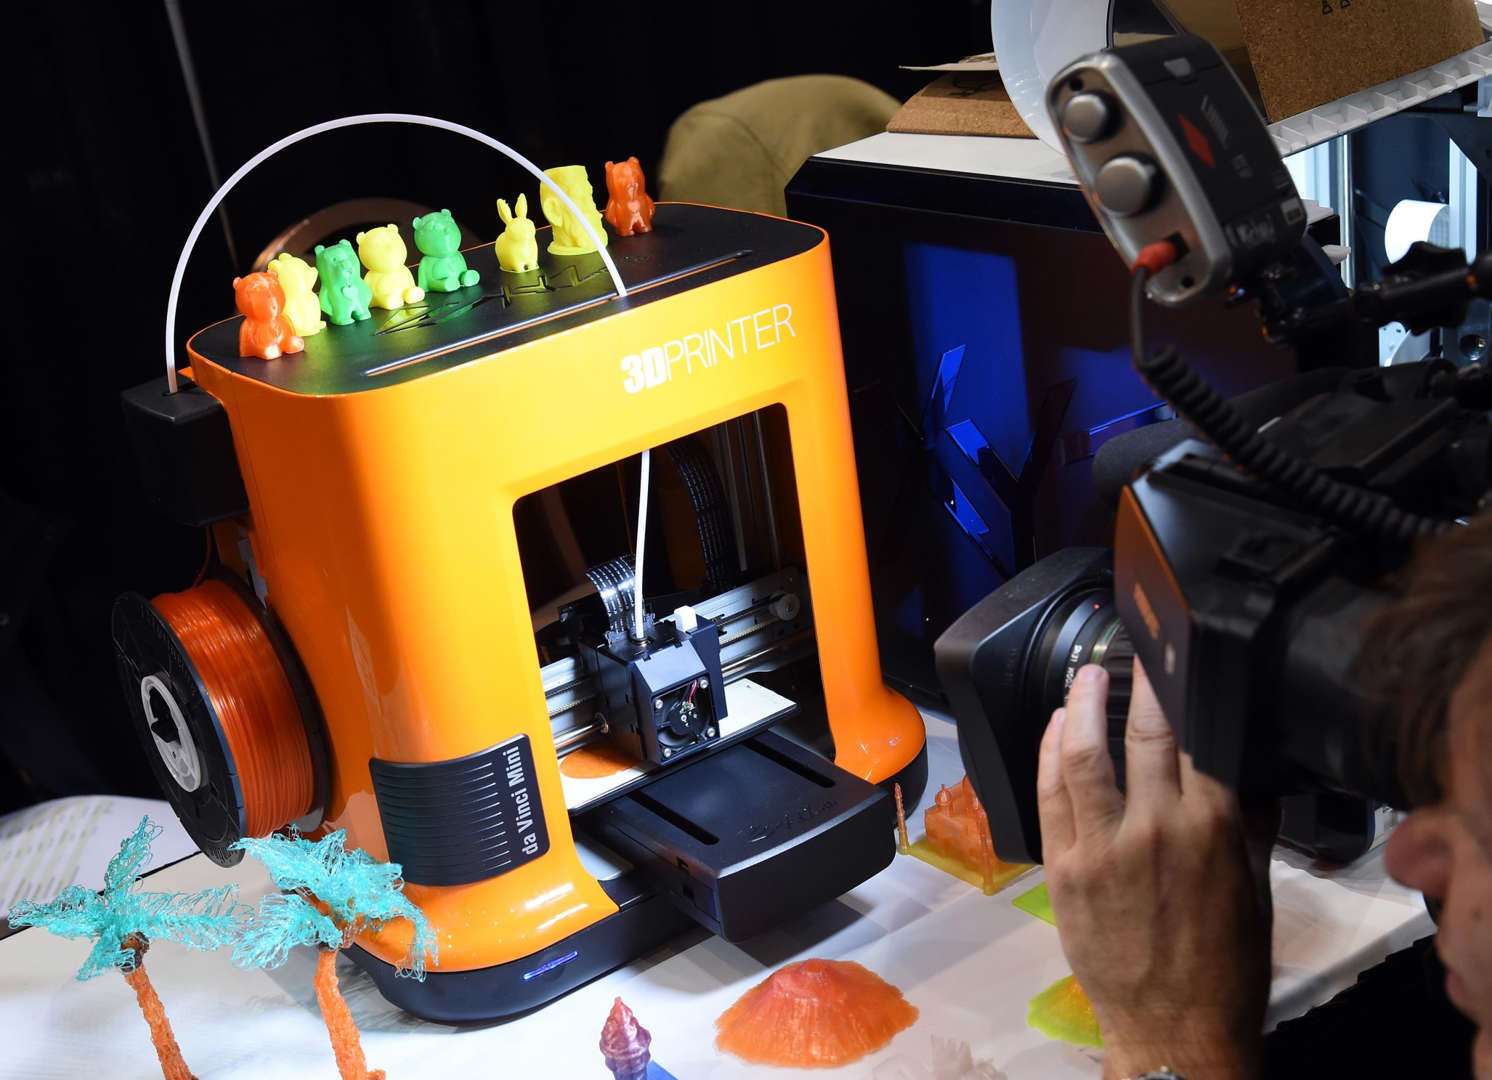 LAS VEGAS, NV - JANUARY 04: The da Vinci Mini 3D printer from xyzPrinting is displayed during a press event for CES 2016 at the Mandalay Bay Convention Center on January 4, 2016 in Las Vegas, Nevada. The 7.8-cubic-inch, USD 269 3D printer, scheduled to be available in the second quarter of 2016, uses templates received by wireless transmission or USB. CES, the world's largest annual consumer technology trade show, runs from January 6-9 and is expected to feature 3,600 exhibitors showing off their latest products and services to more than 150,000 attendees. (Photo by Ethan Miller/Getty Images)